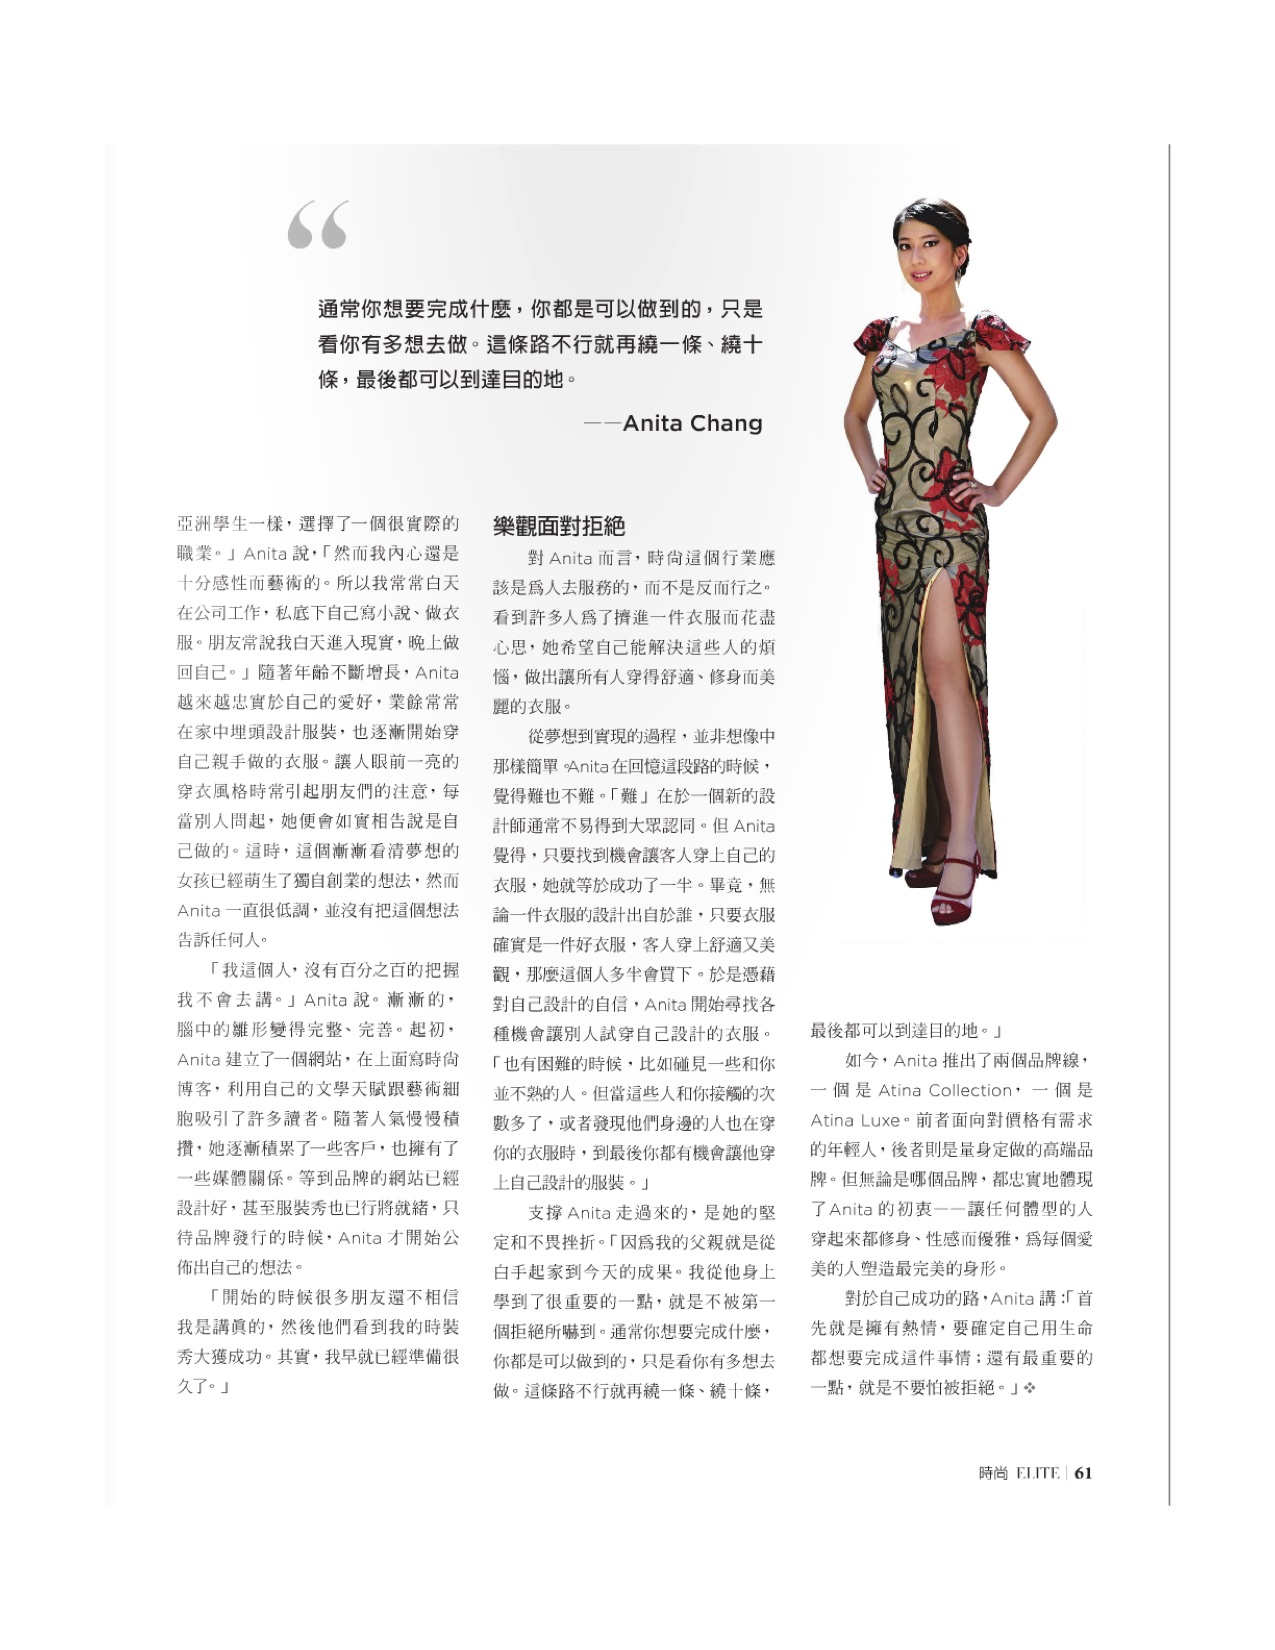 elite-magazine-interview-p3.jpg